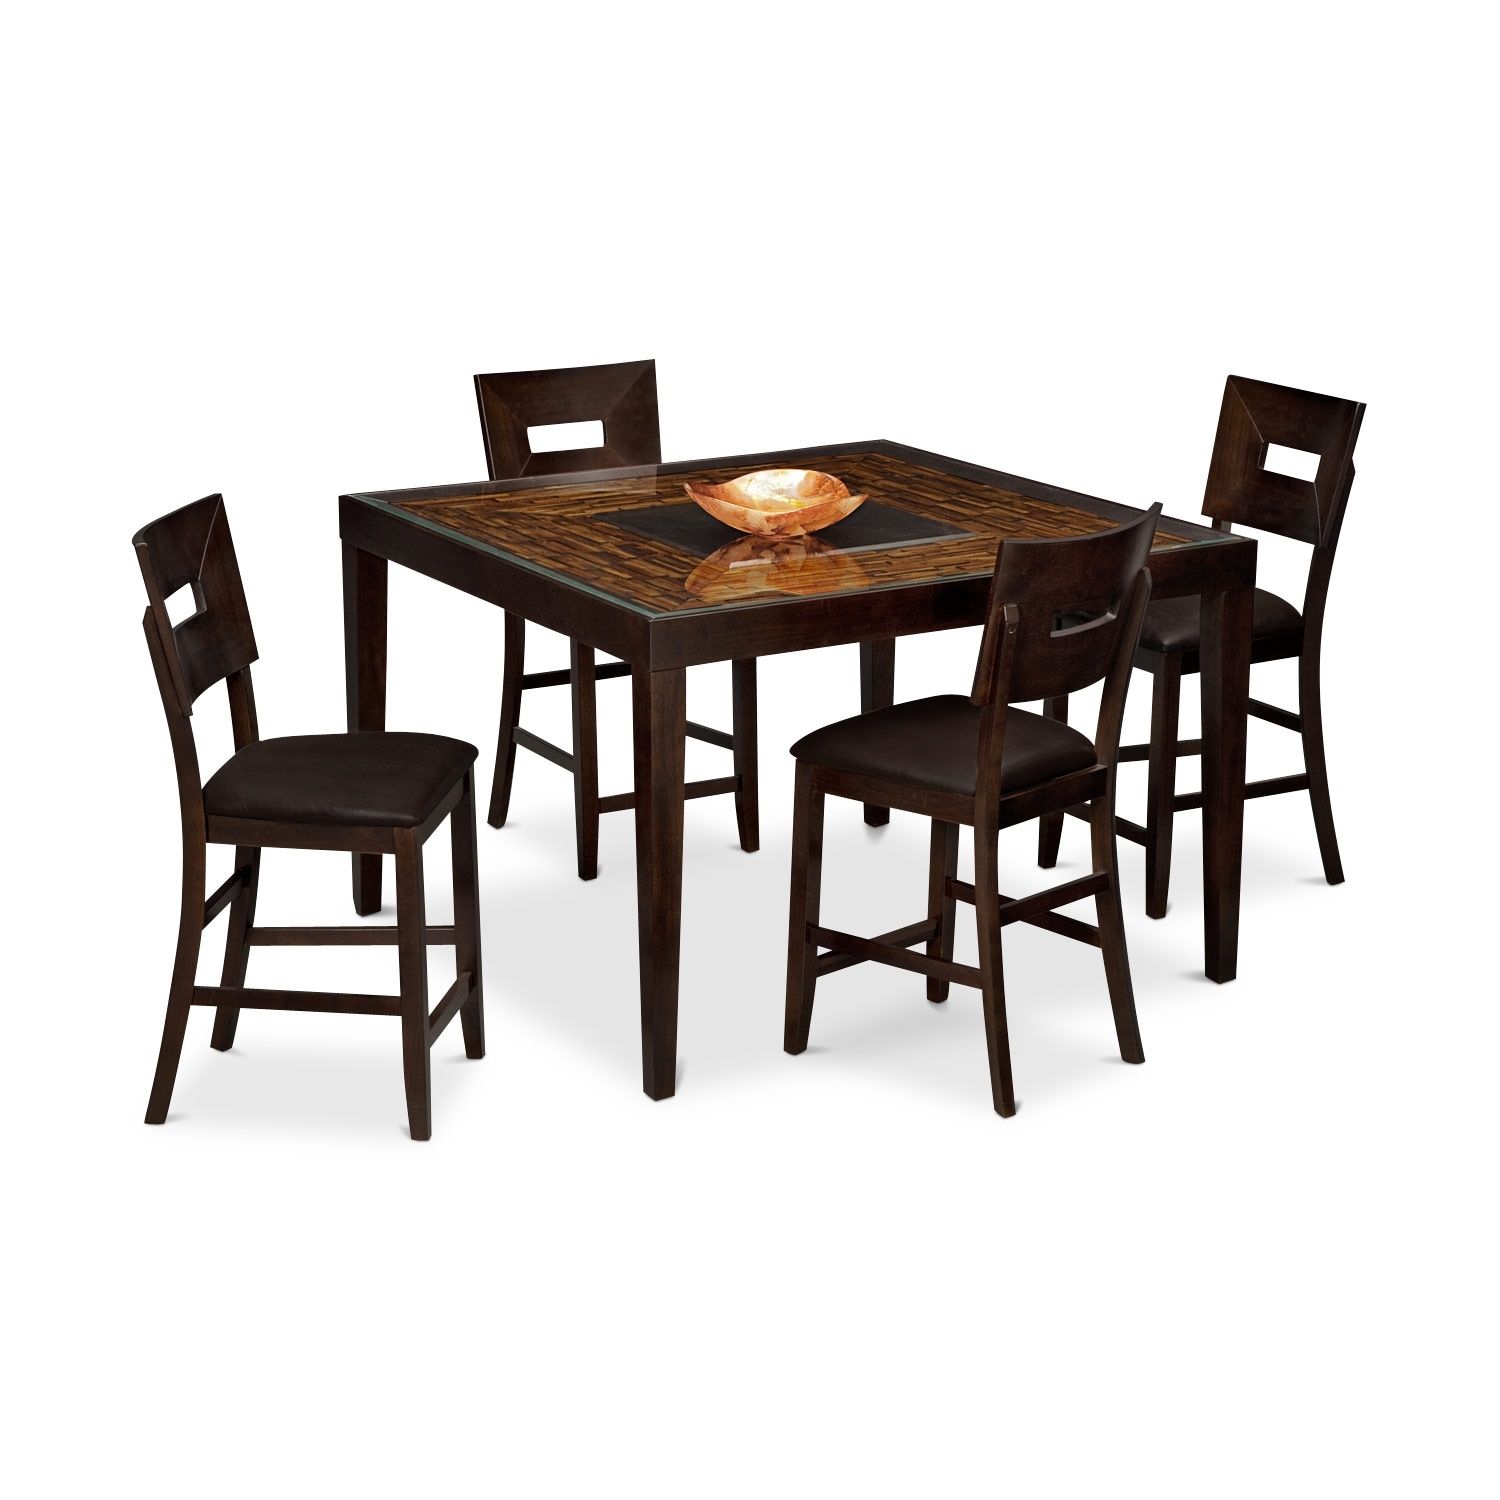 Furnishings for every room online and store furniture for Dining room furniture specials